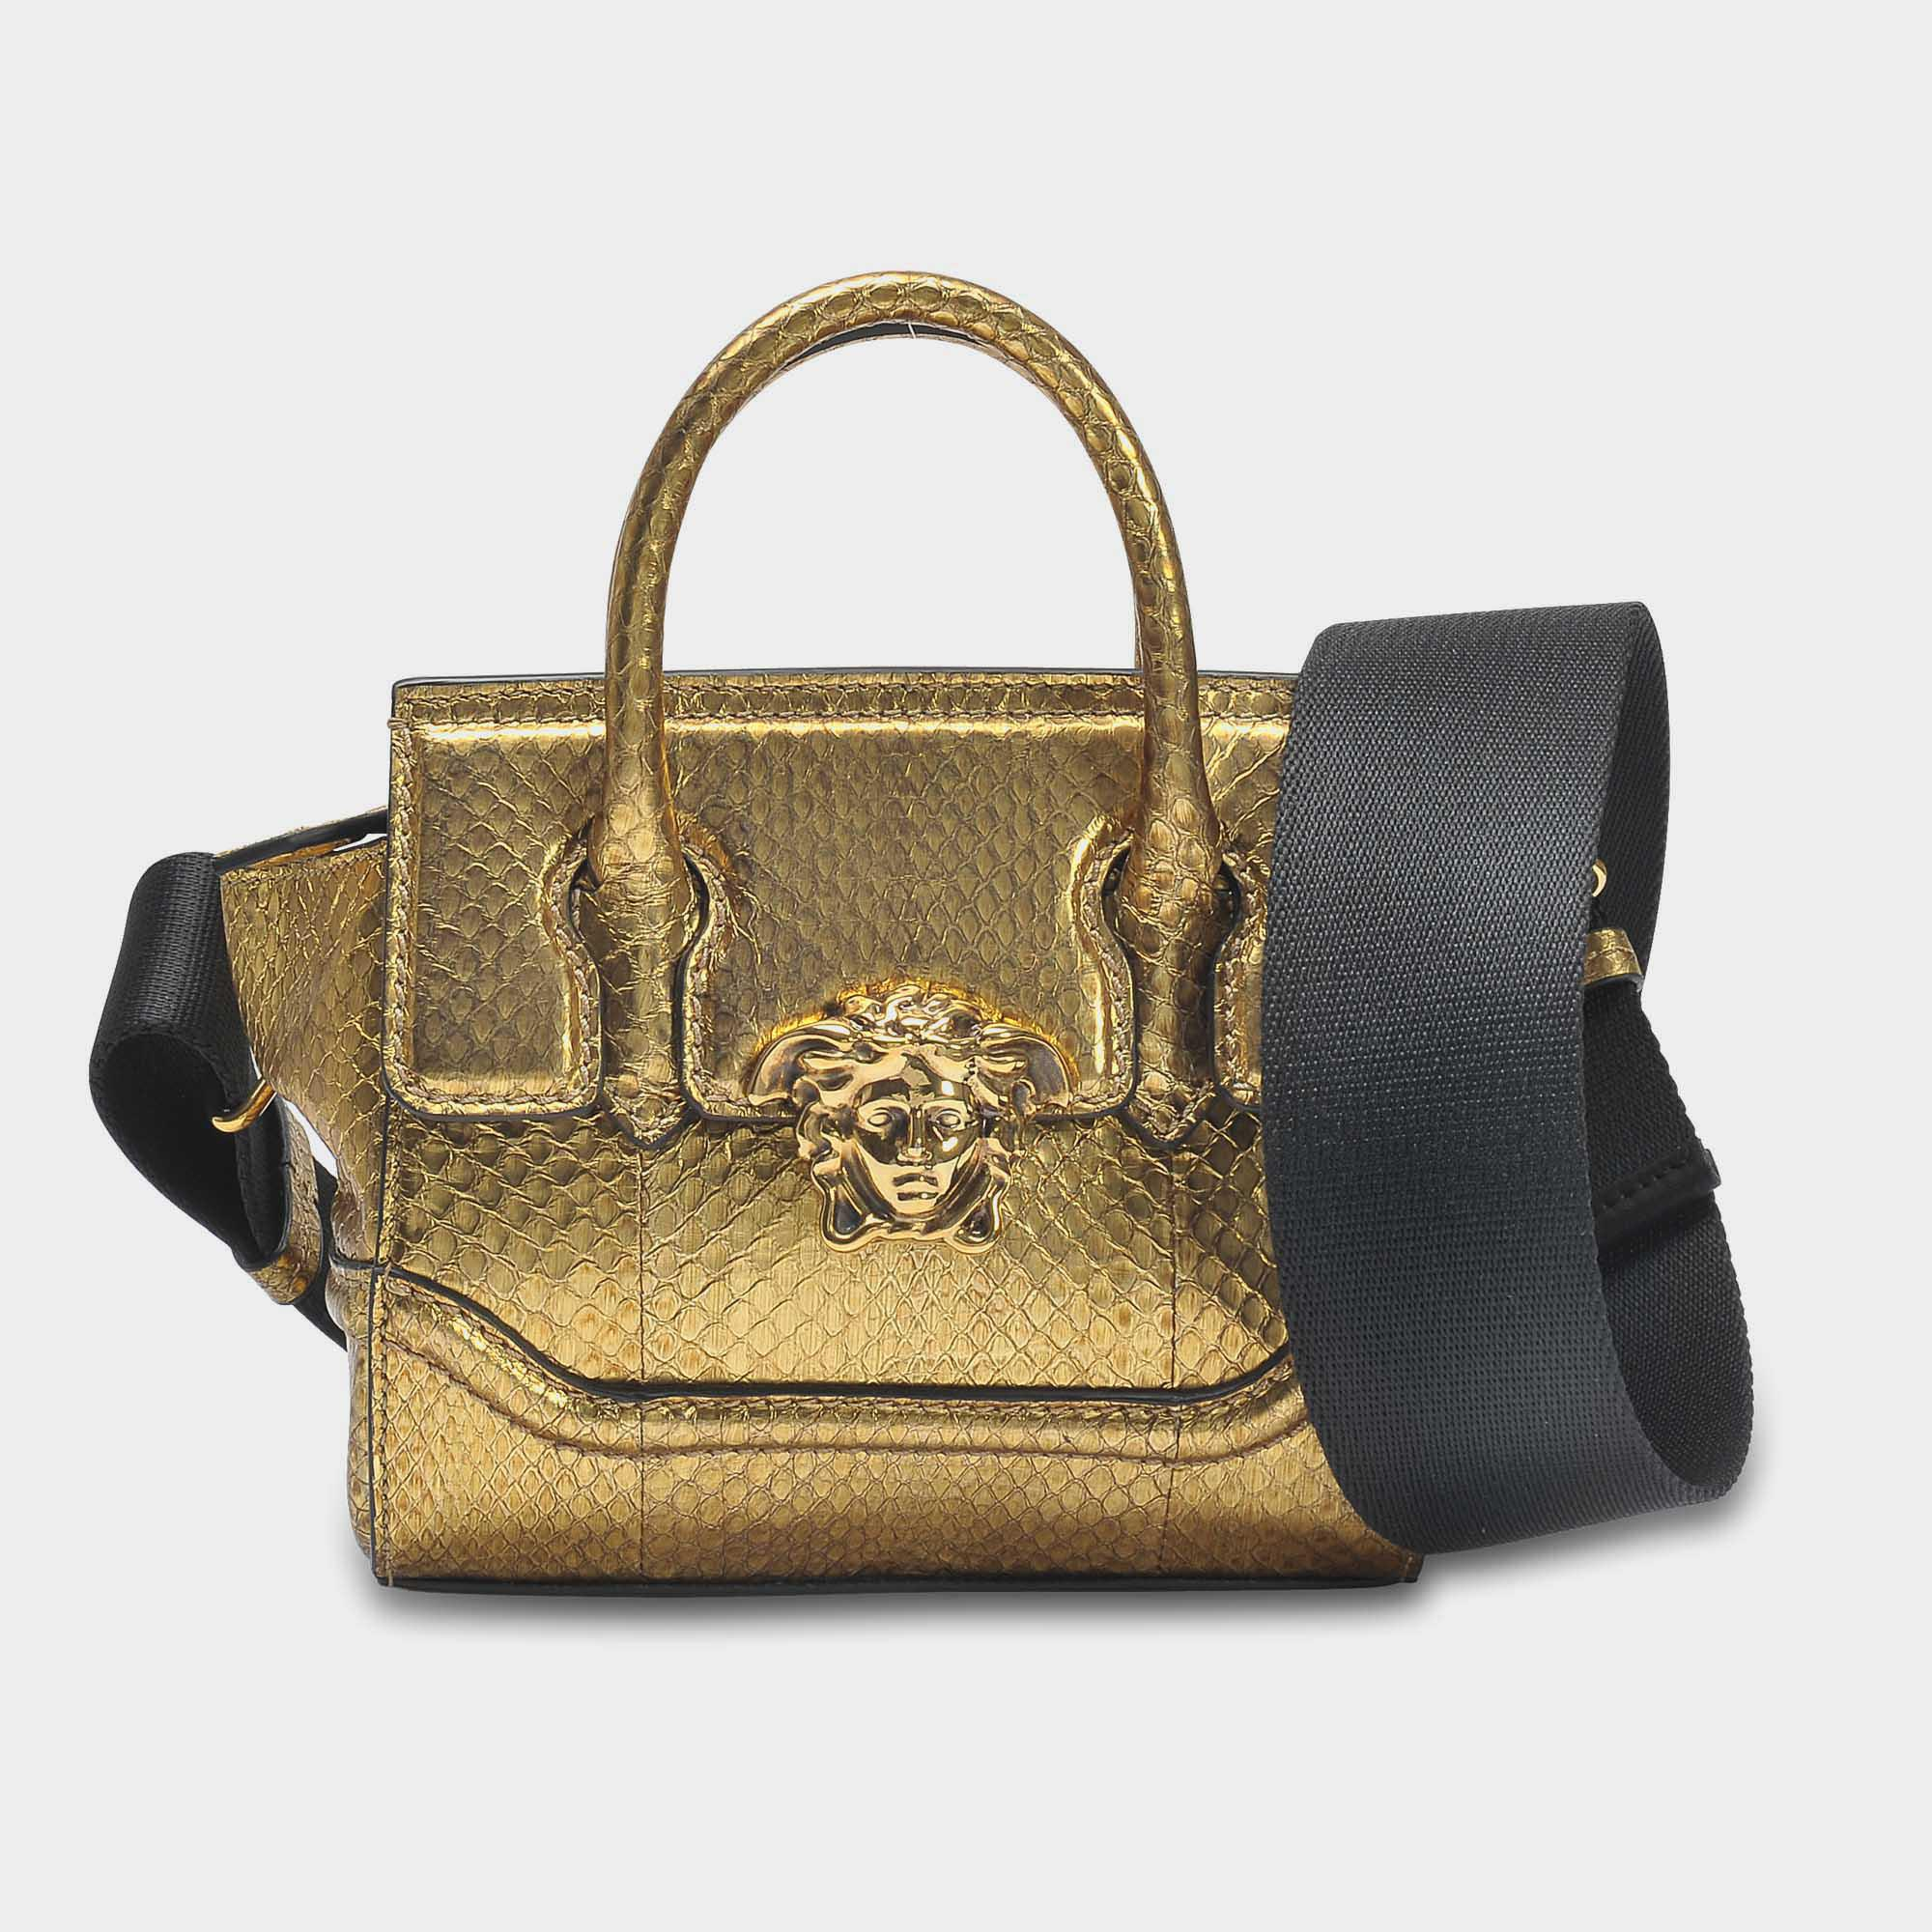 d5c6f79387 Lyst - Versace Palazzo Empire Mini Bag In Gold Watersnake